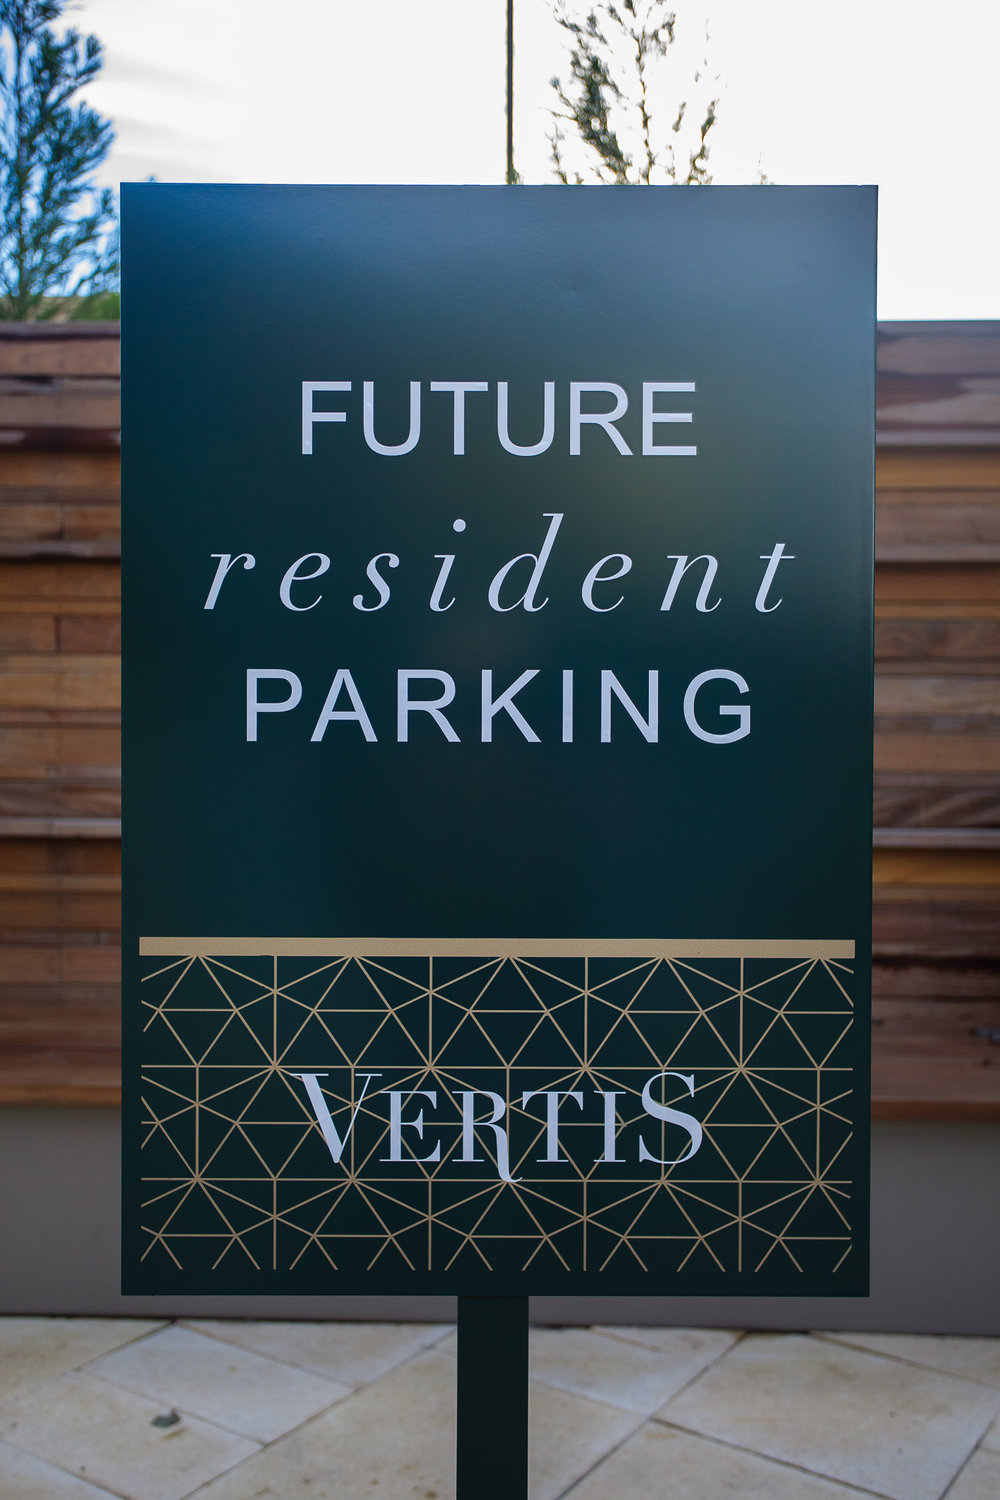 Vertis-Green-Hills_brand-identity-signage_future-resident-parking_MG_5201_small 2000 px.jpg